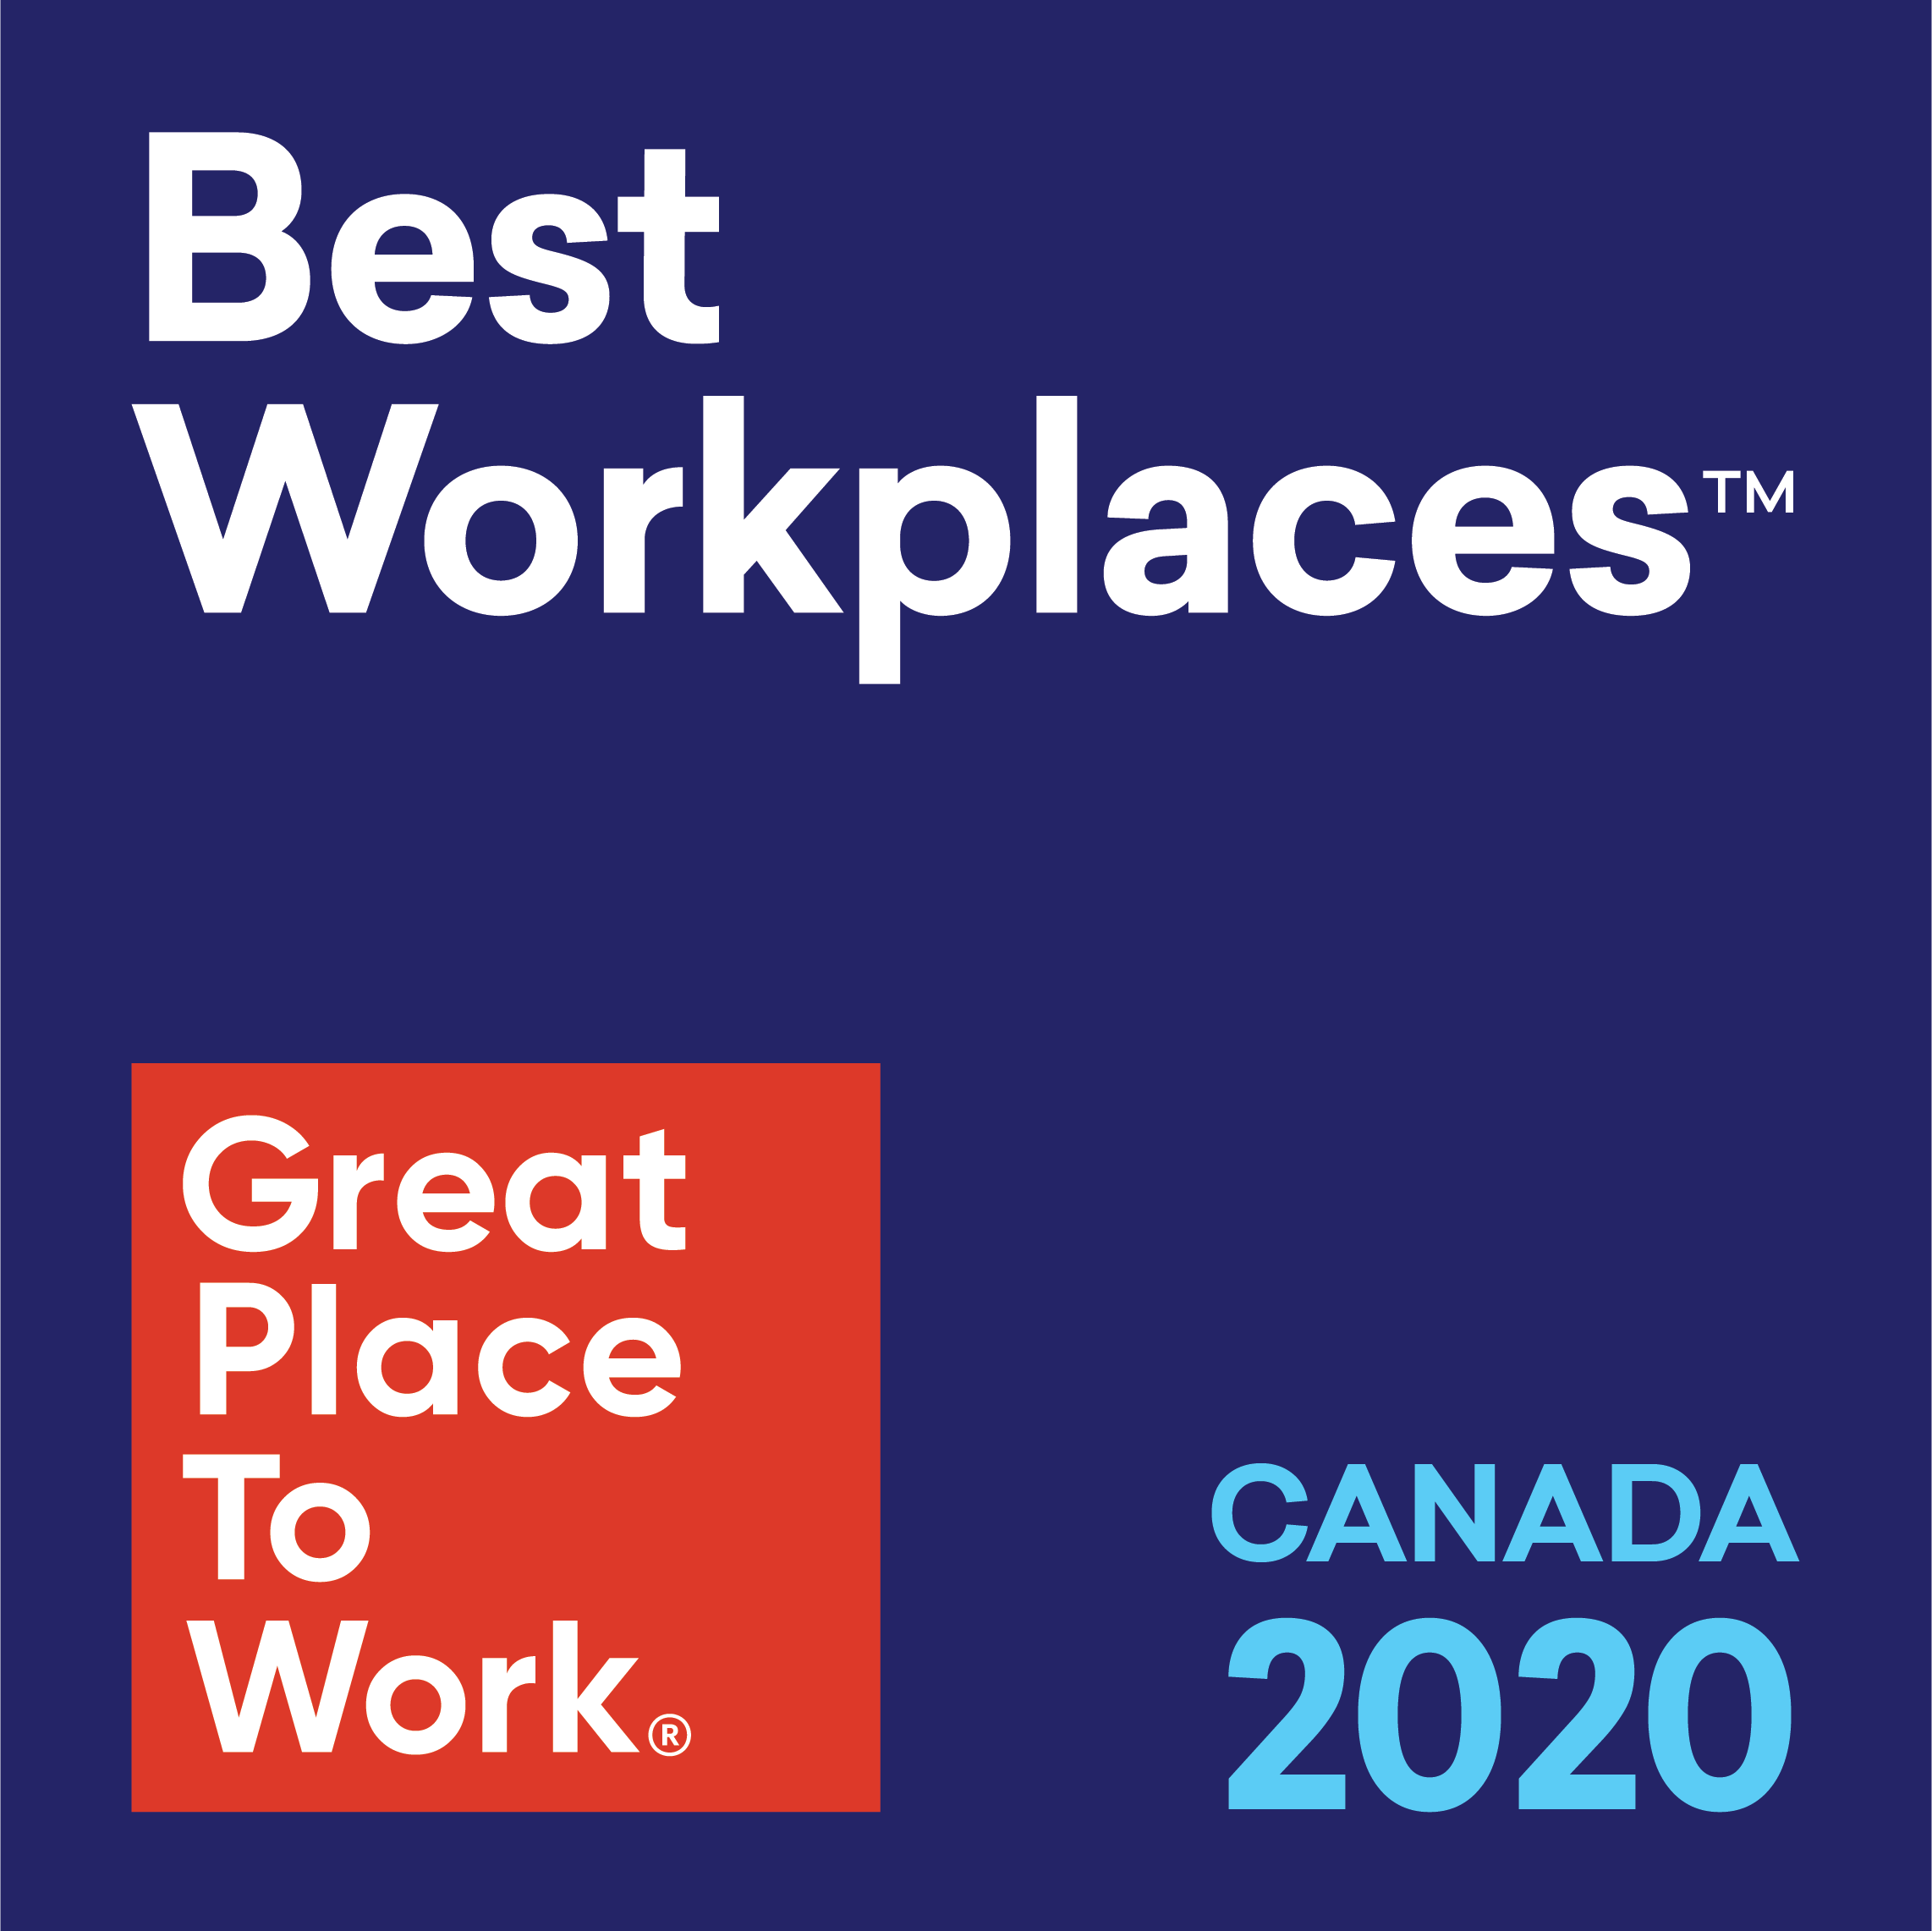 Best Workplaces.  Great Place To Work in Canada 2020.